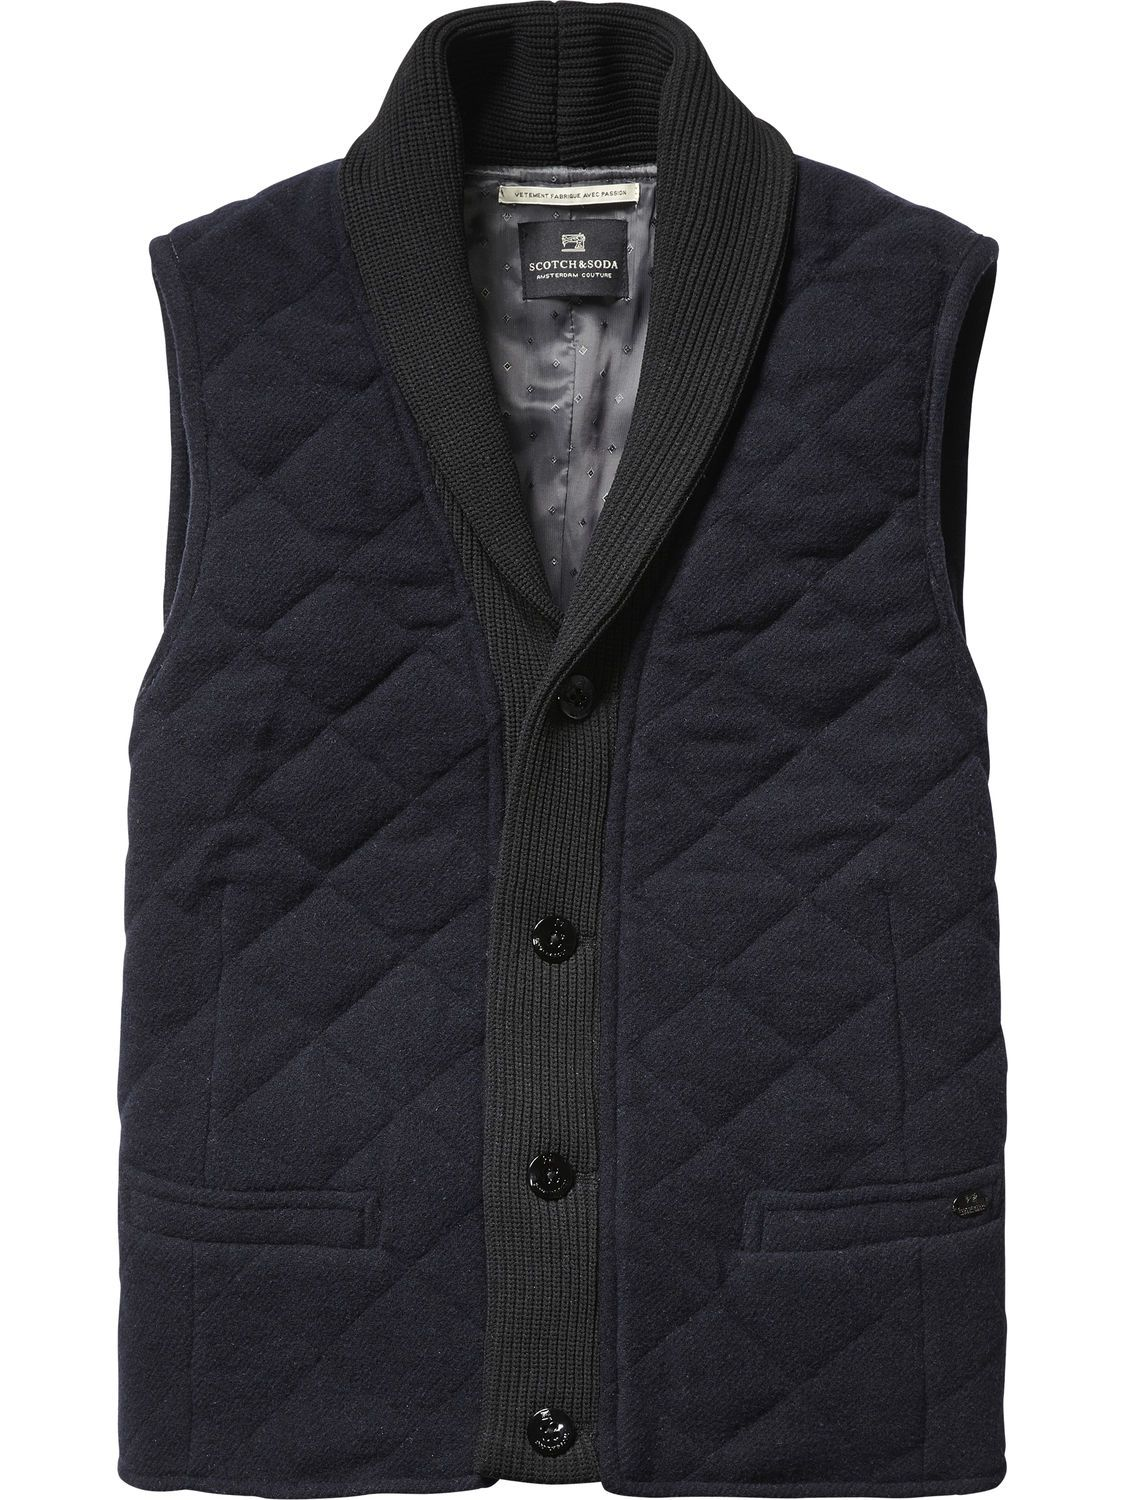 quilted wool blend gilet gilets men 39 s clothing at scotch soda men 39 s sweater pinterest. Black Bedroom Furniture Sets. Home Design Ideas